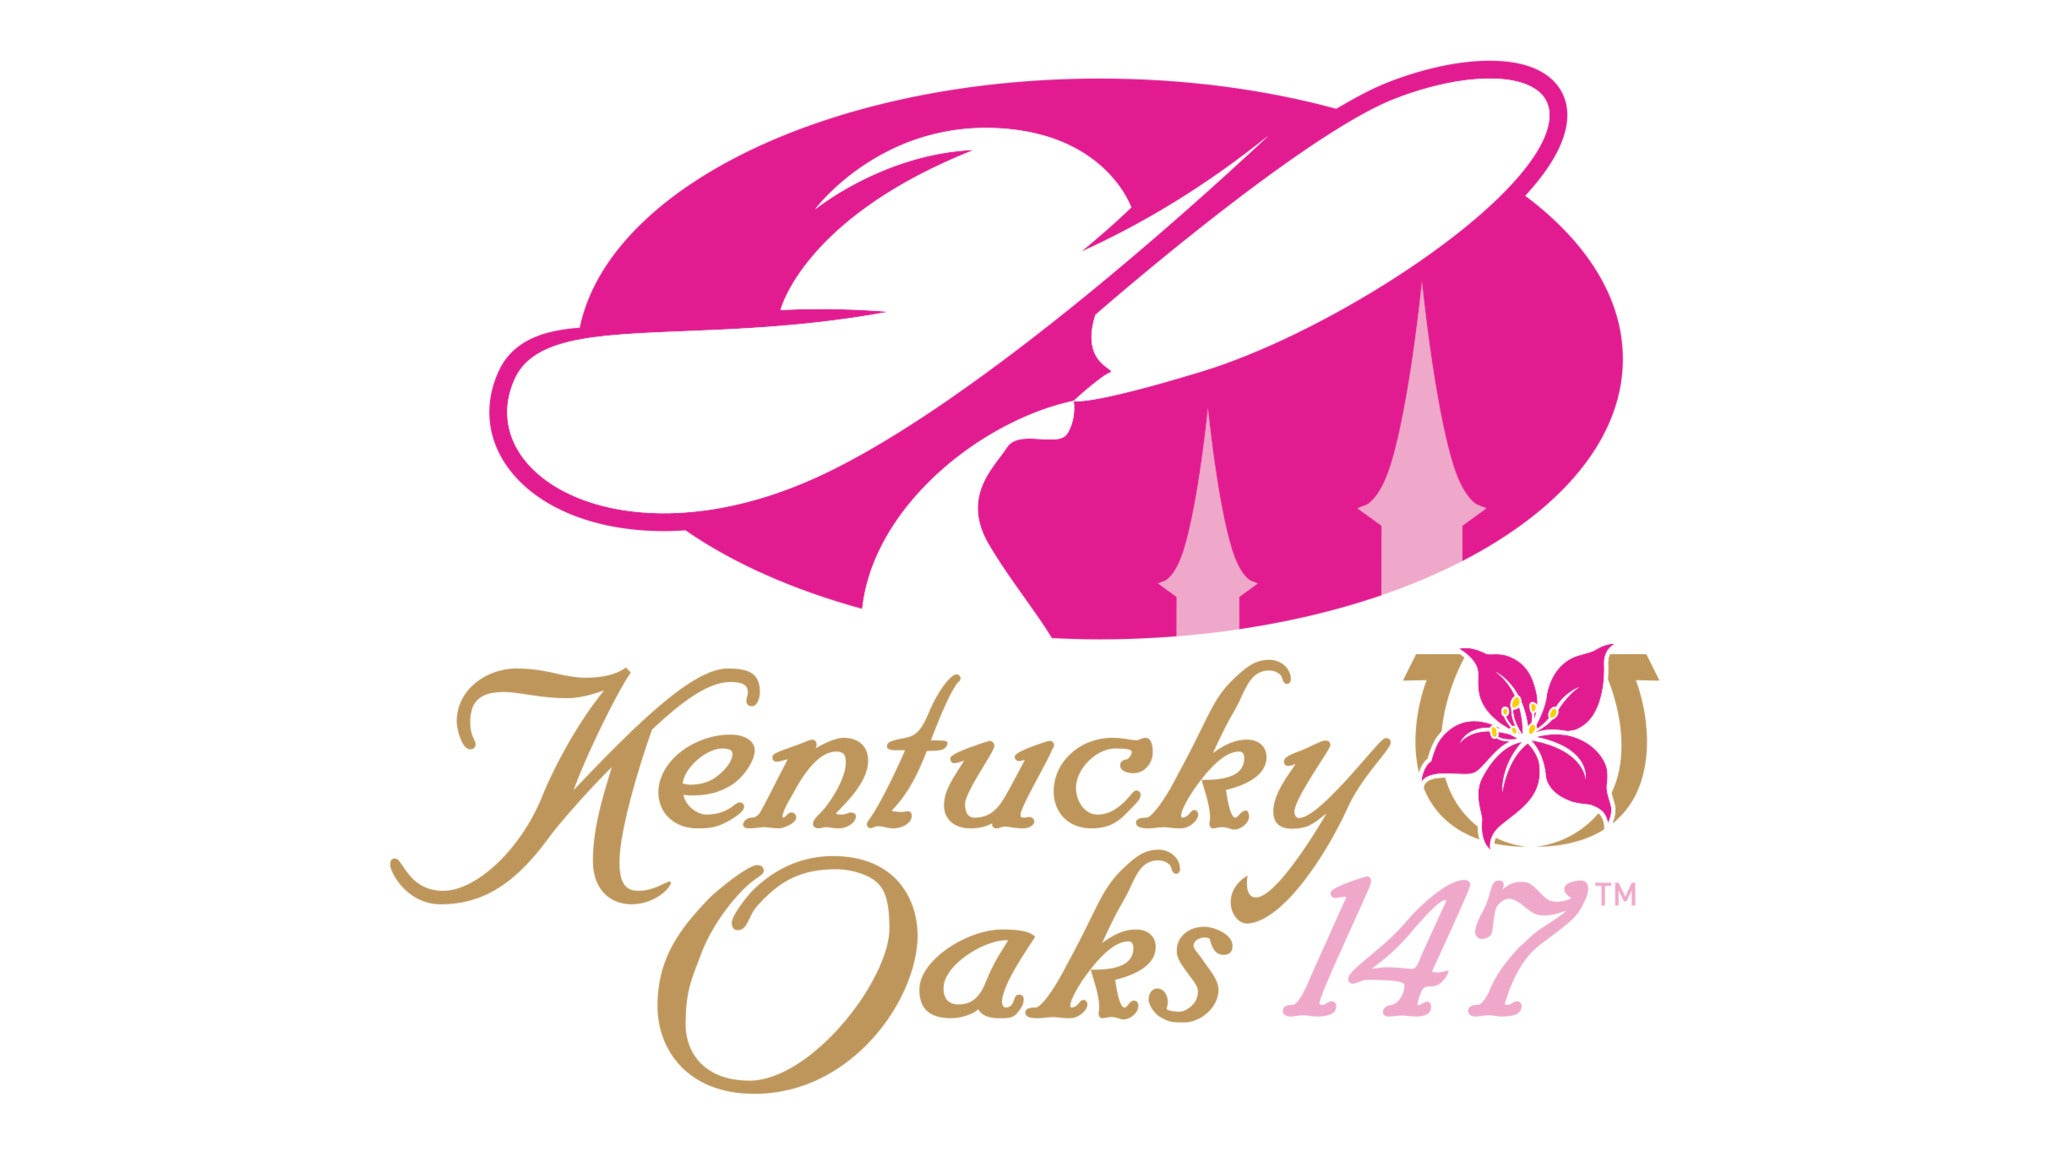 147th Kentucky Oaks - All-Inclusive Reserved And Box Seating